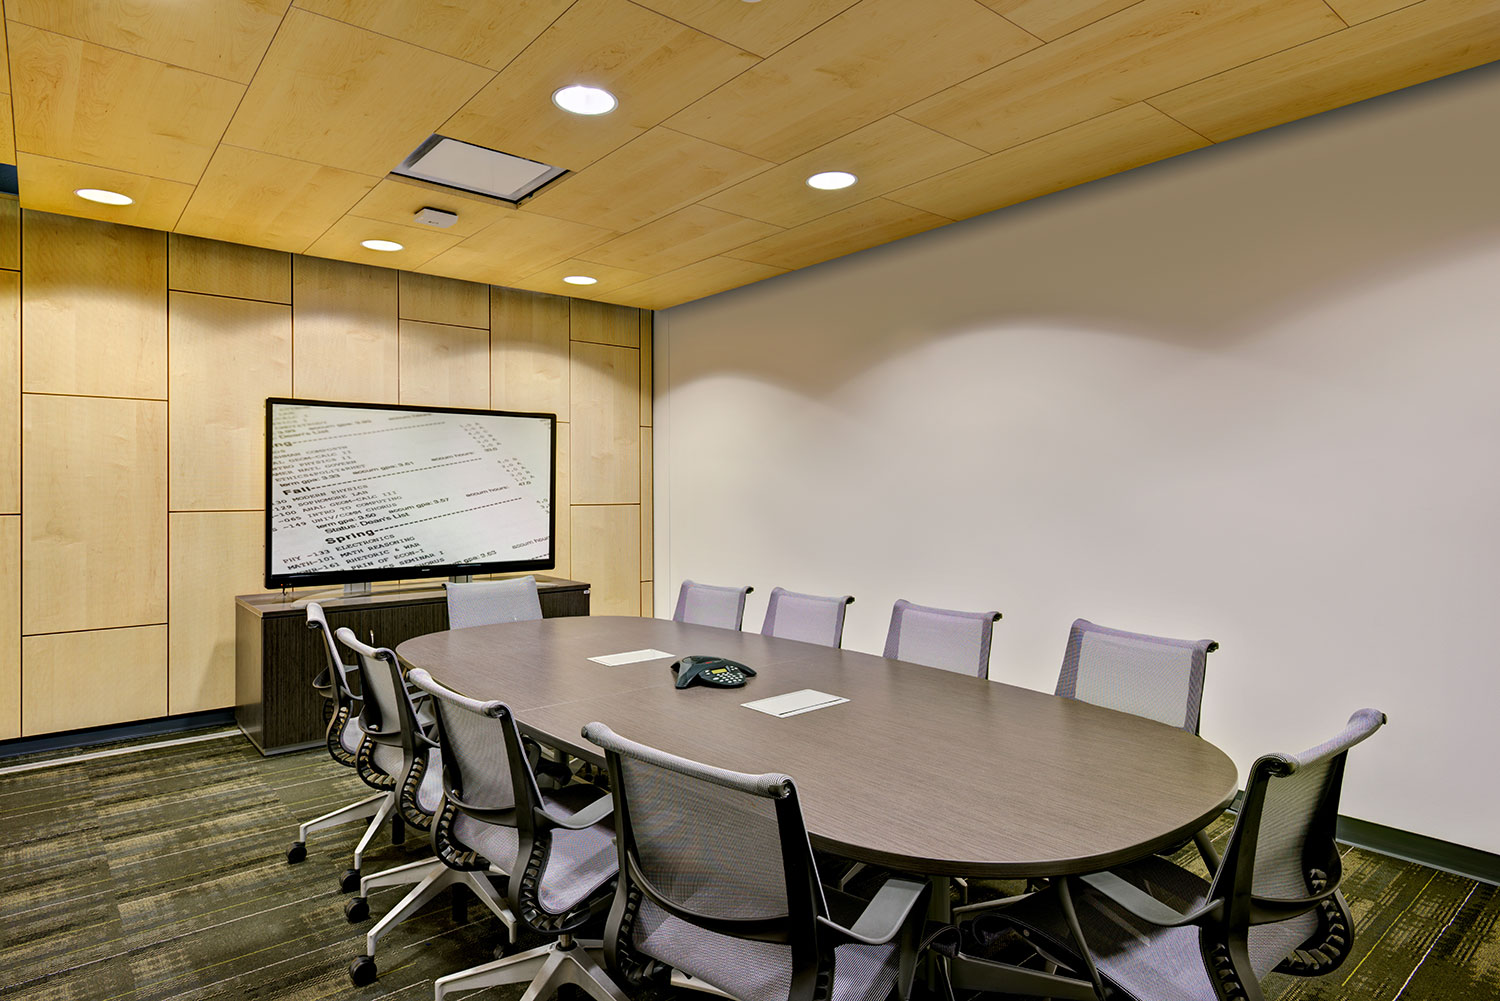 Conference room at Mosaic Associates College Science Center design for Hudson Valley Community College in Troy, New York.